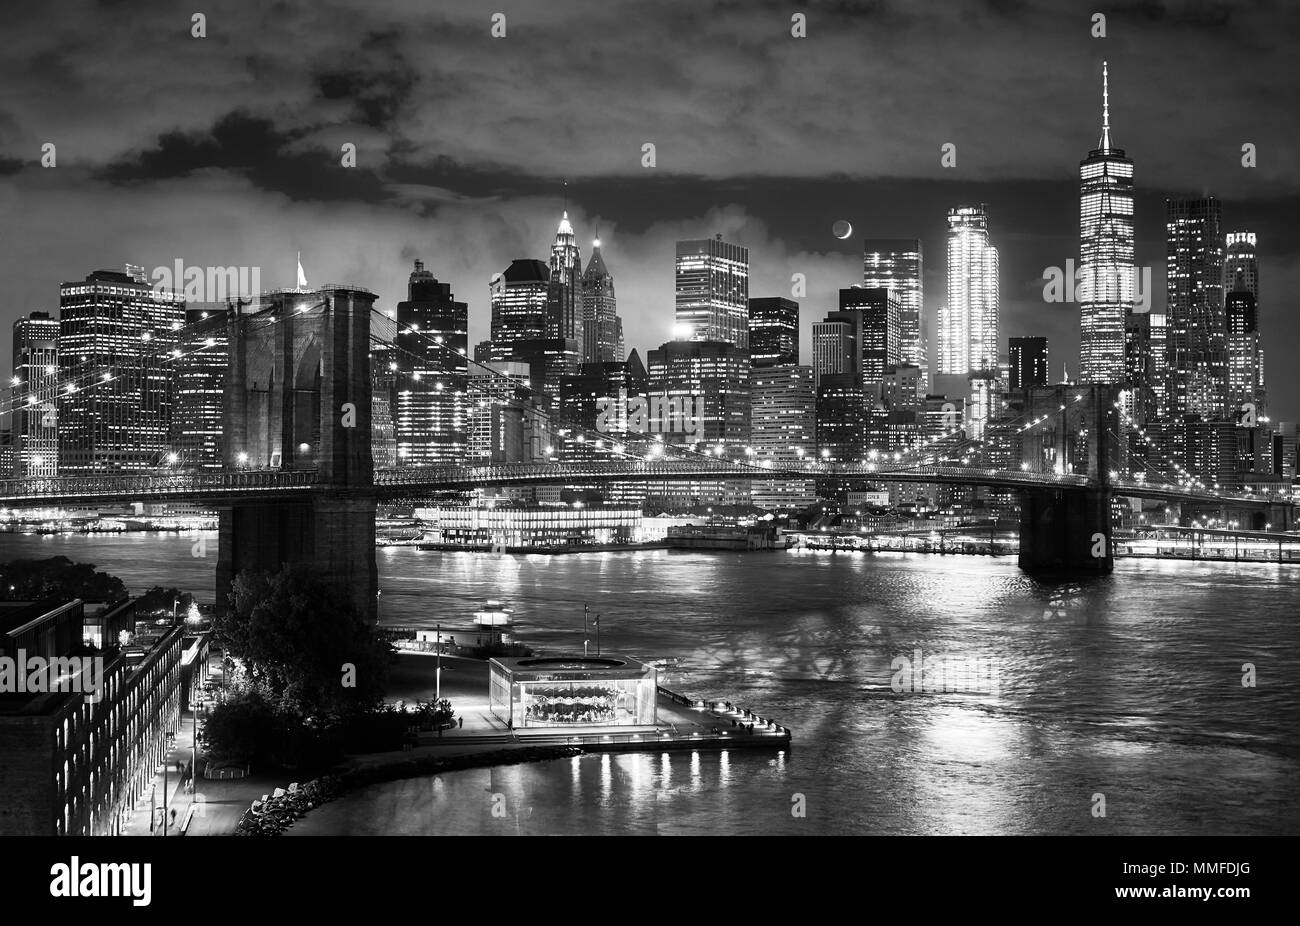 Black and white picture of the Brooklyn Bridge and Manhattan seen from Dumbo at night, New York City, USA. - Stock Image